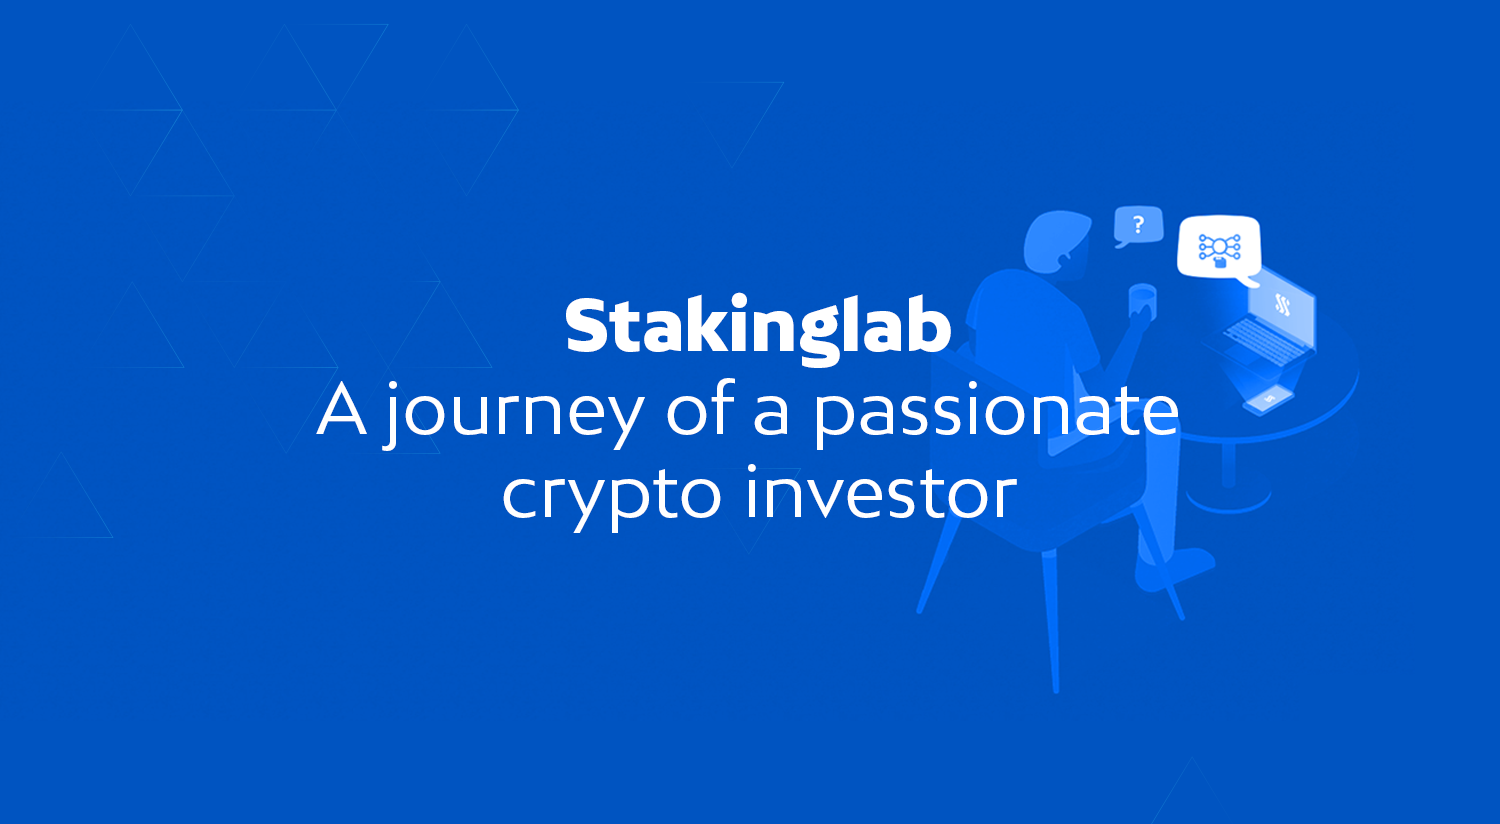 Stakinglab – A journey of a passionate crypto investor